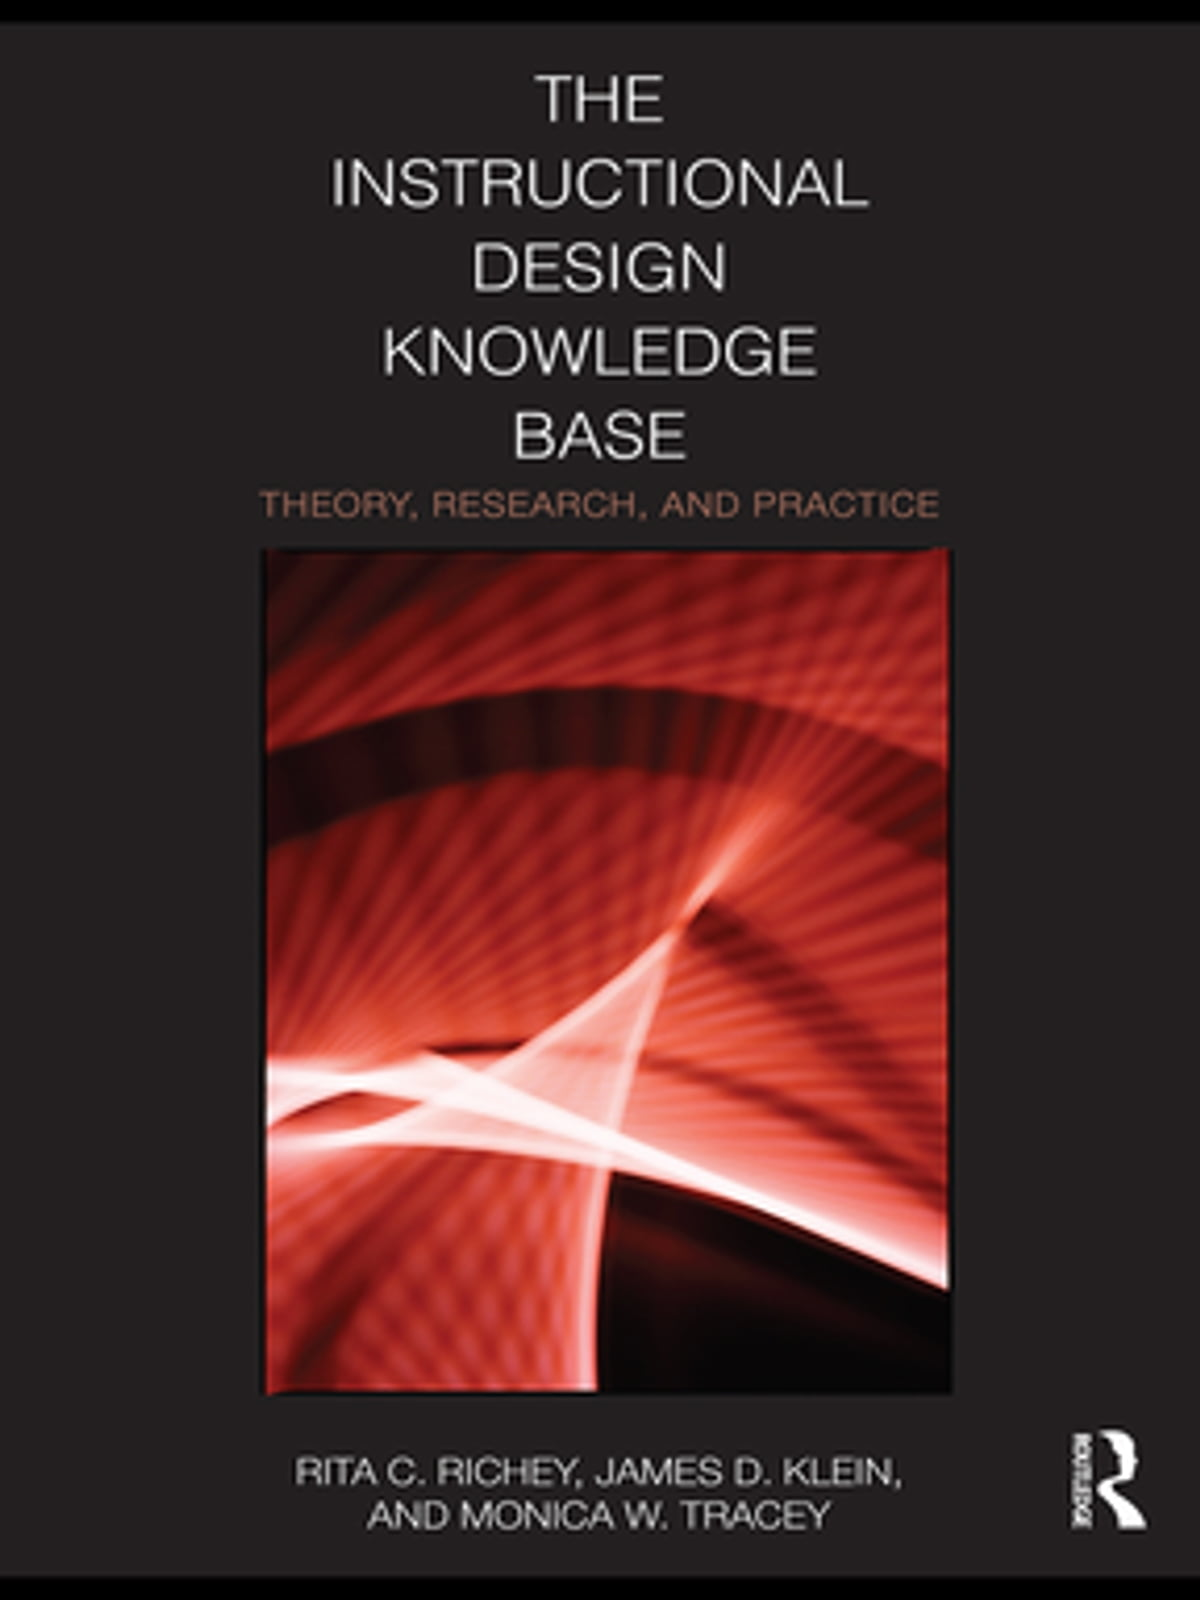 The Instructional Design Knowledge Base Ebook By Rita C Richey